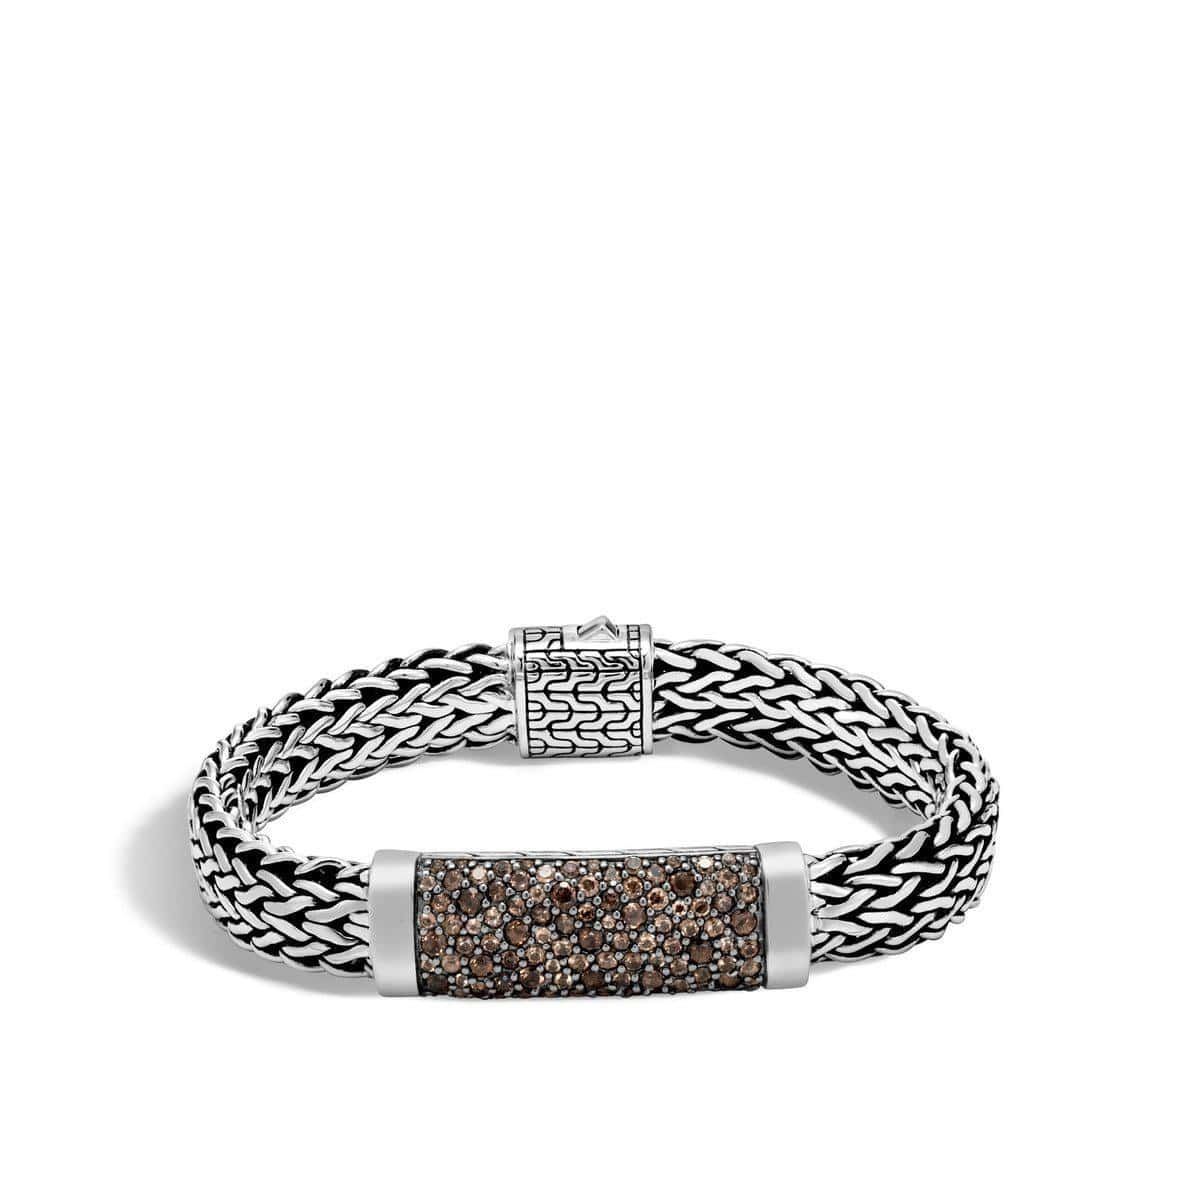 Classic Chain Men's Smoky Quartz Bracelet - BMS9910094SQ-John Hardy-Renee Taylor Gallery